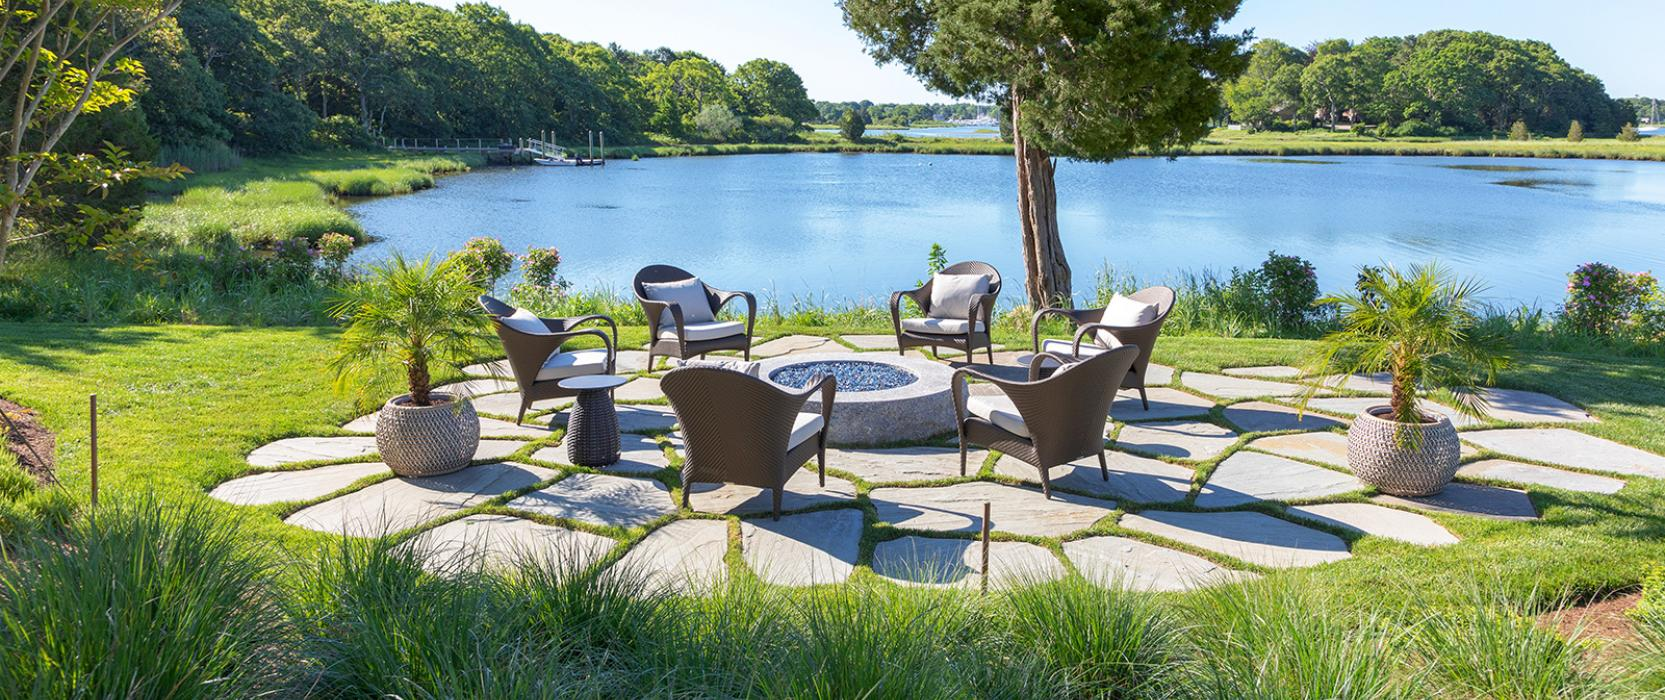 Waterside Fire Pit Terrace by Boston Area Landscape Contractor Schumacher Companies